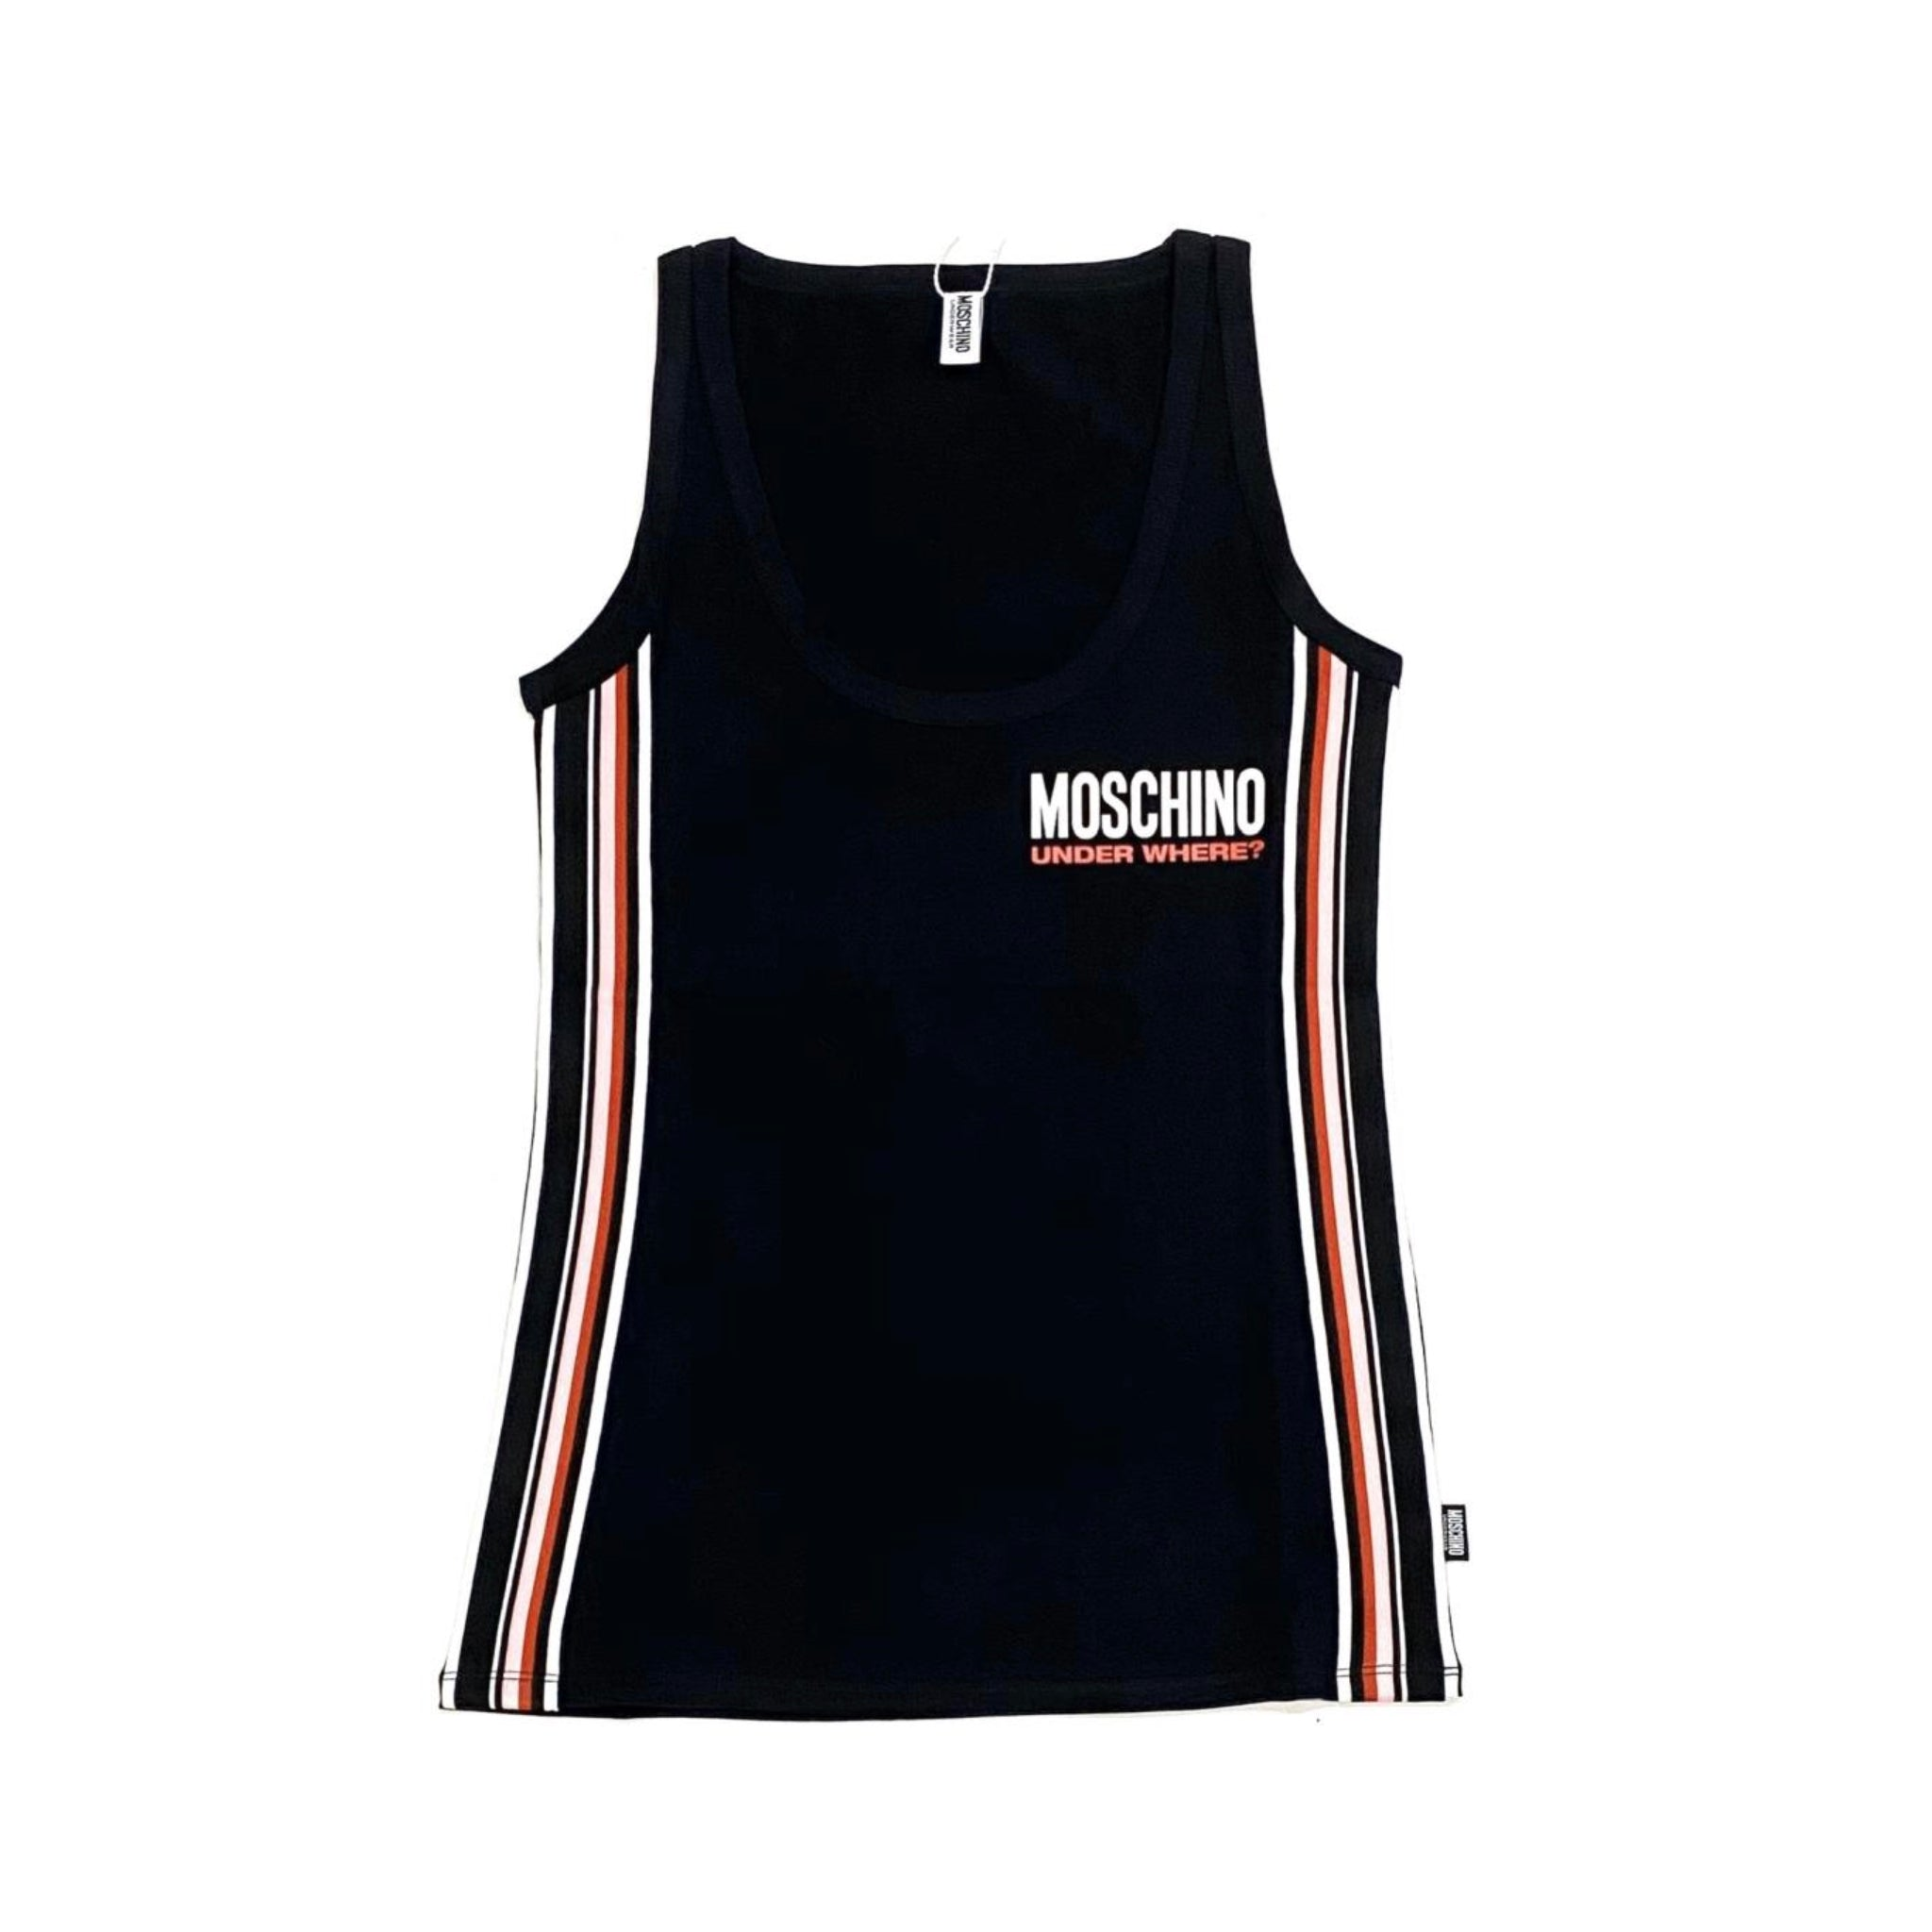 Moschino Underwear Under Where Vest Top